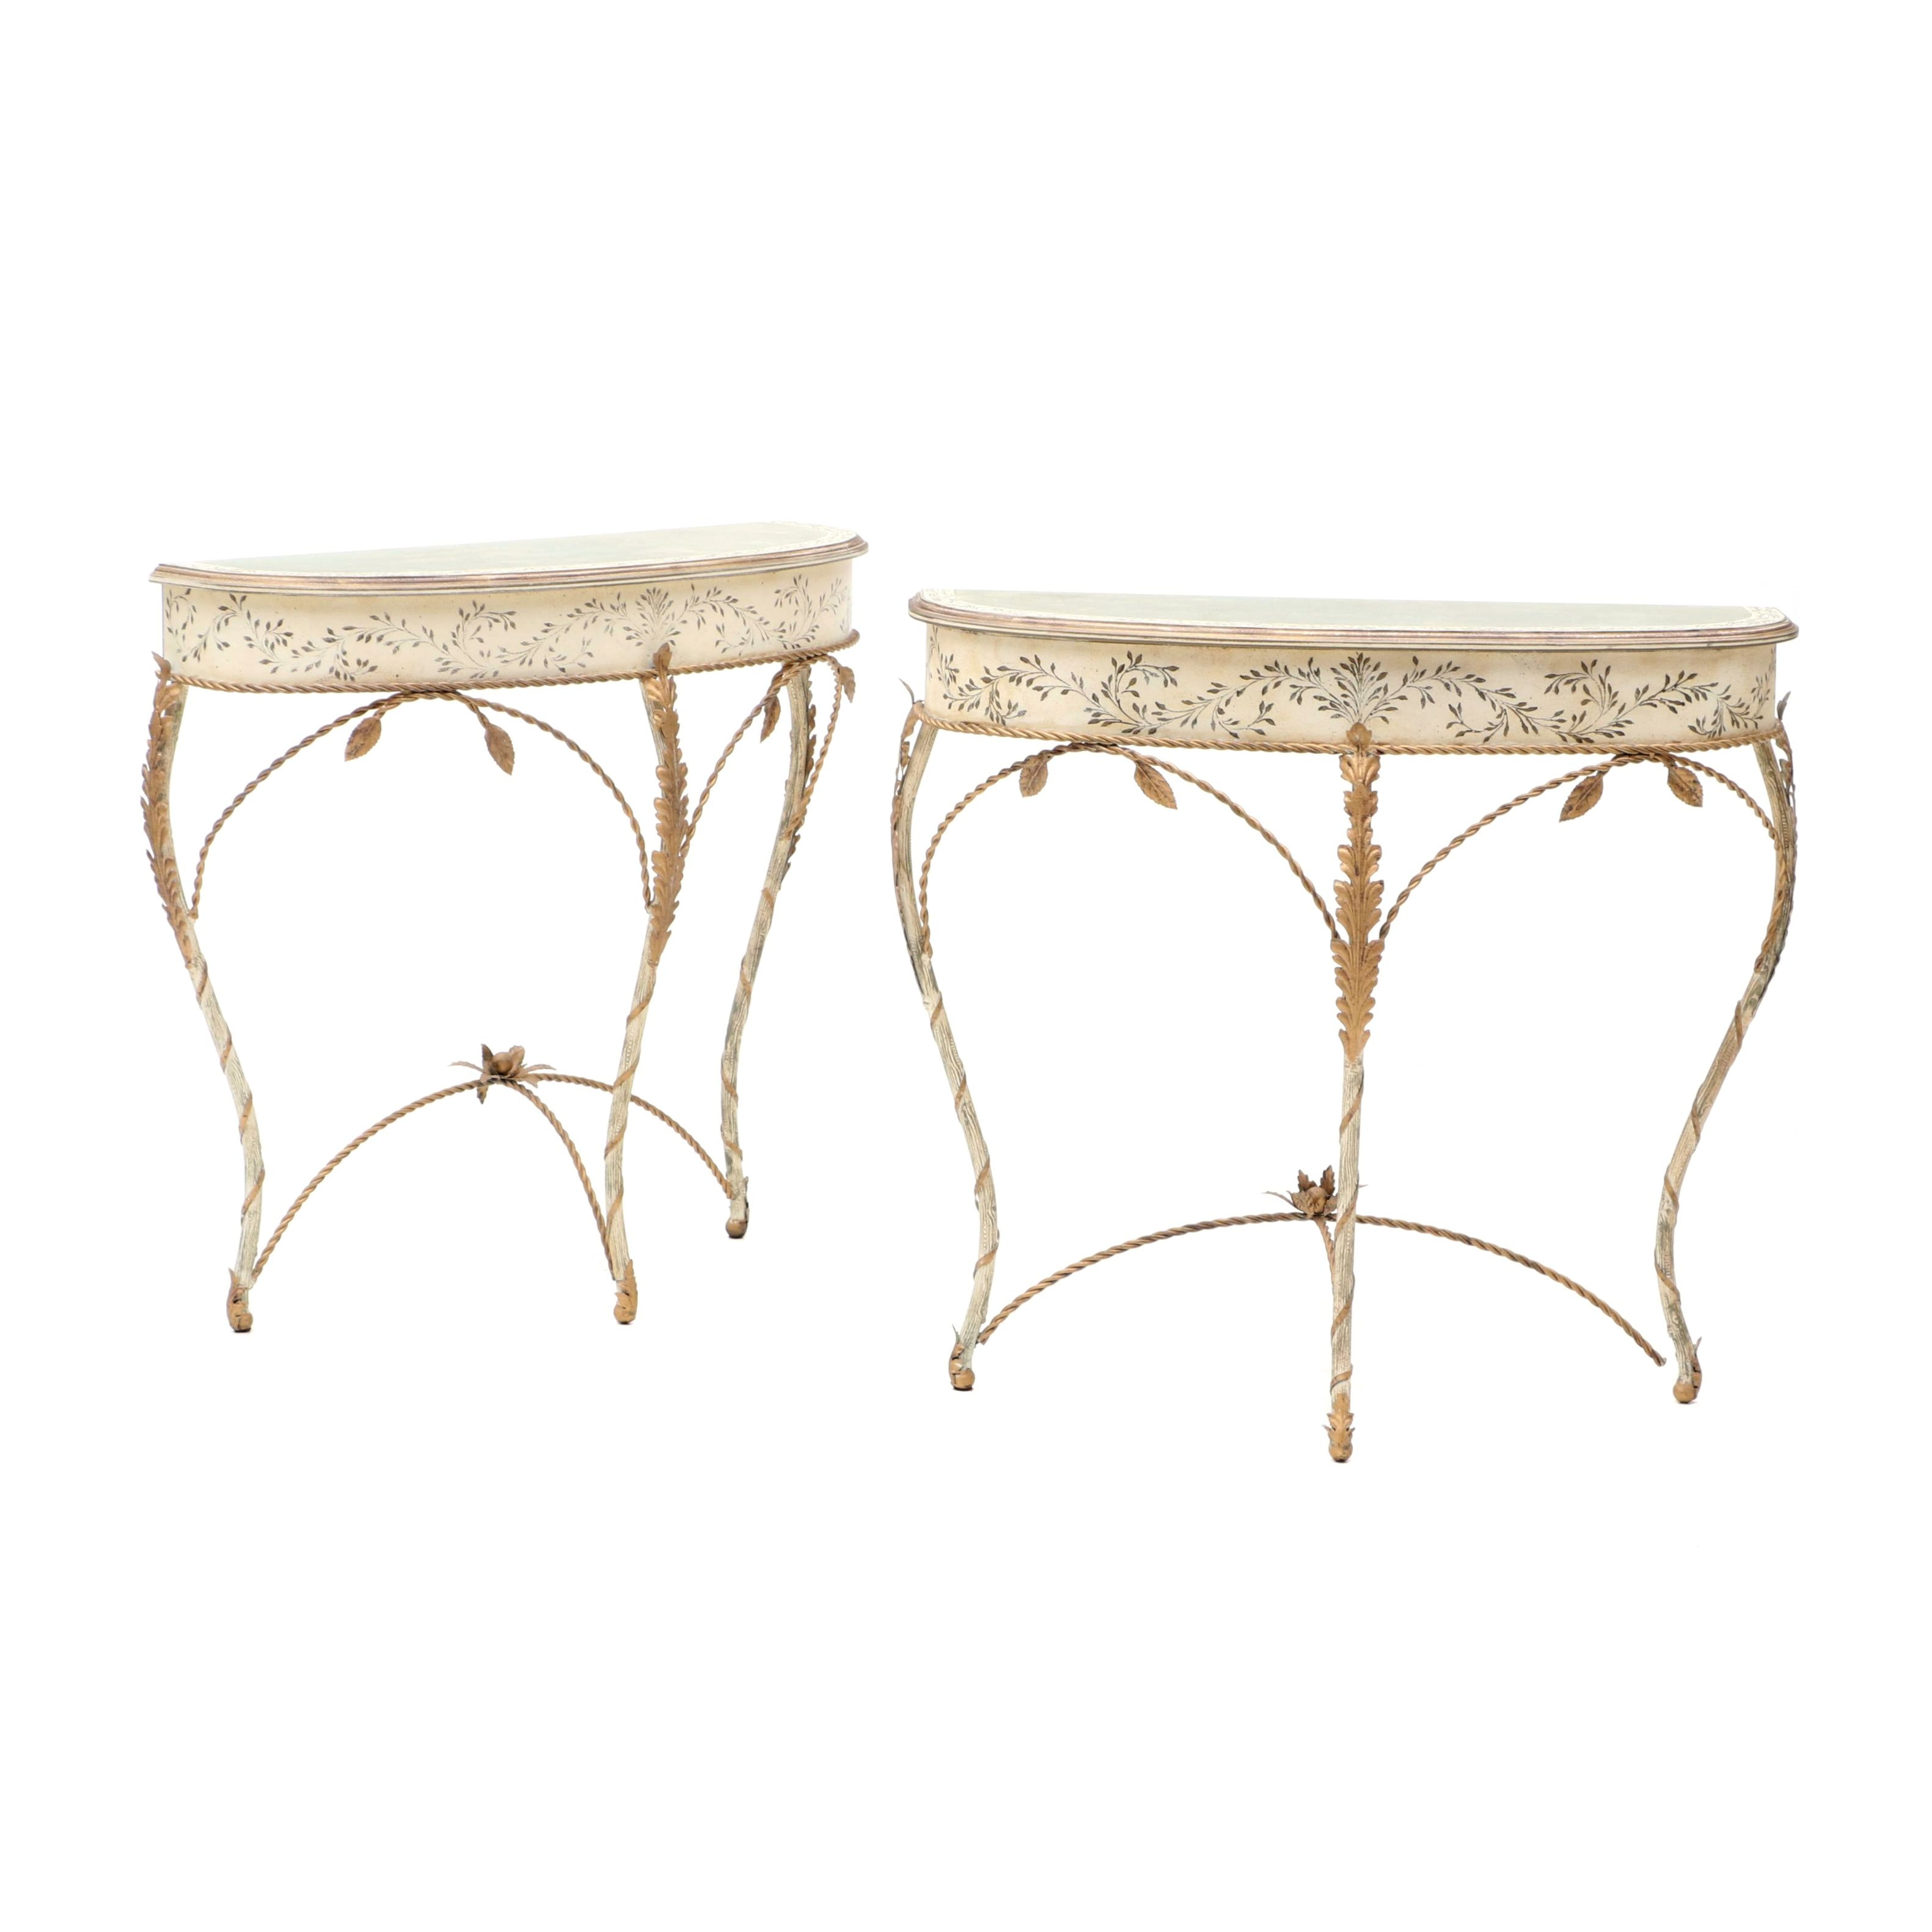 Pair of Painted Wood and Metal Console Tables, 20th Century